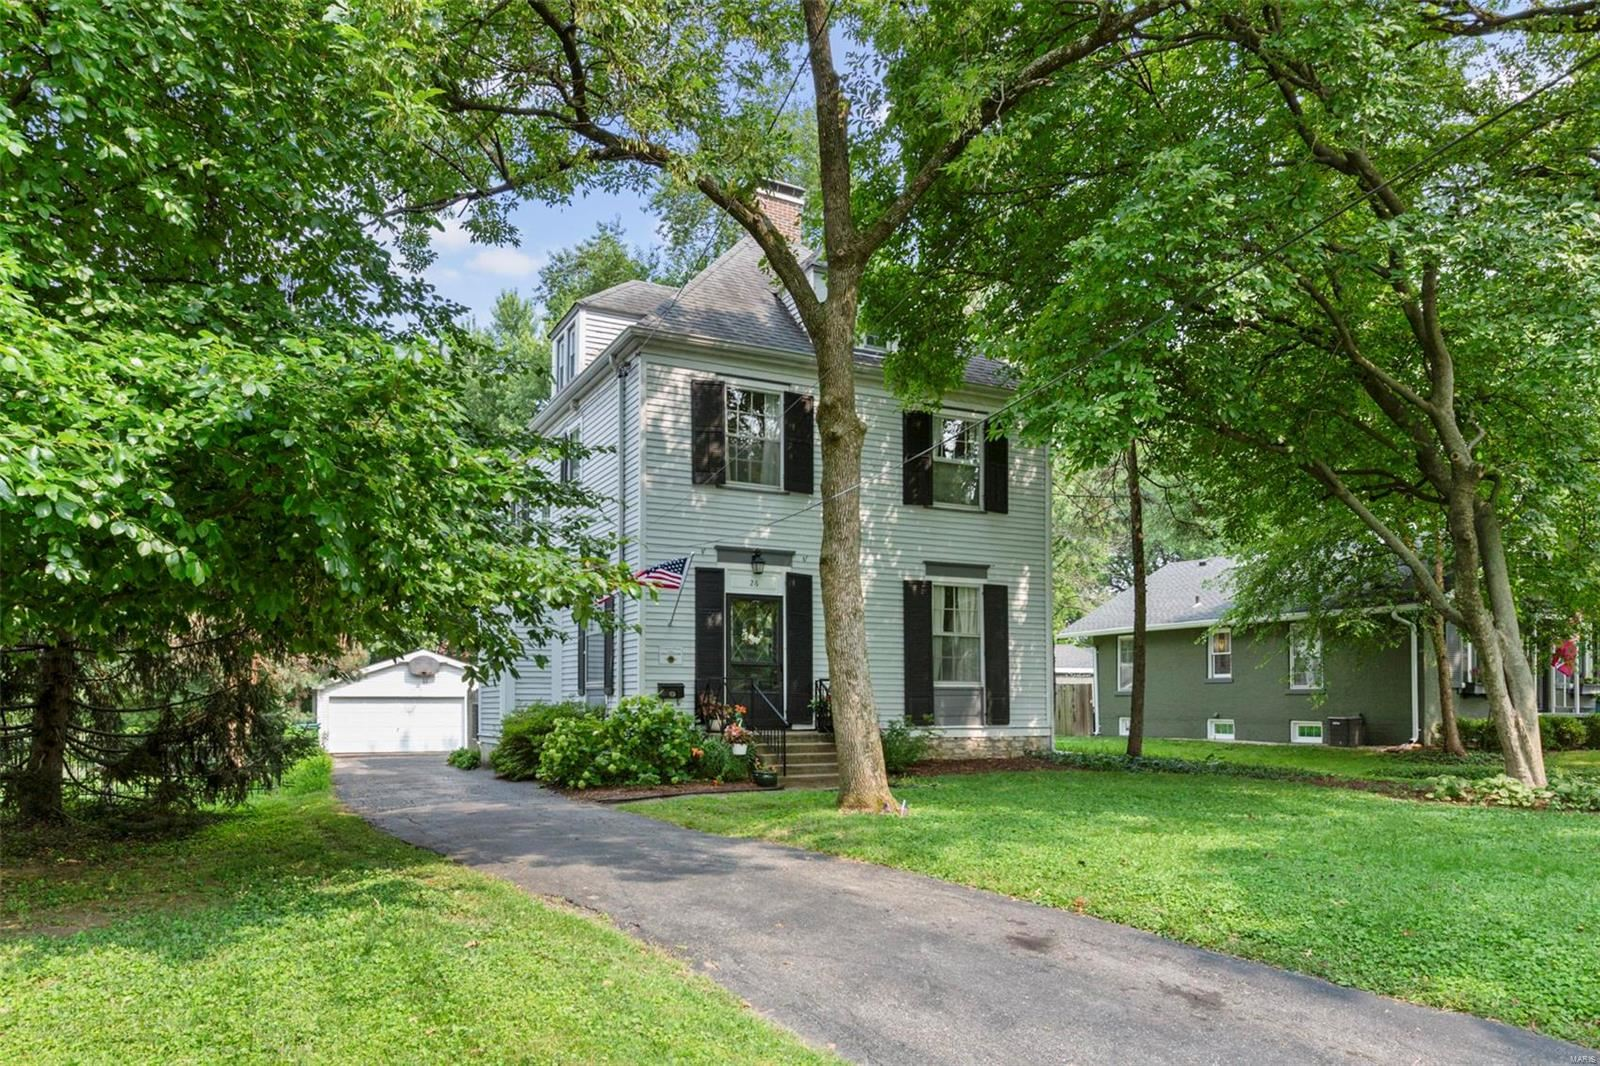 Photo for 26 Sylvester Avenue, Webster Groves, MO 63119 (MLS # 21051713)